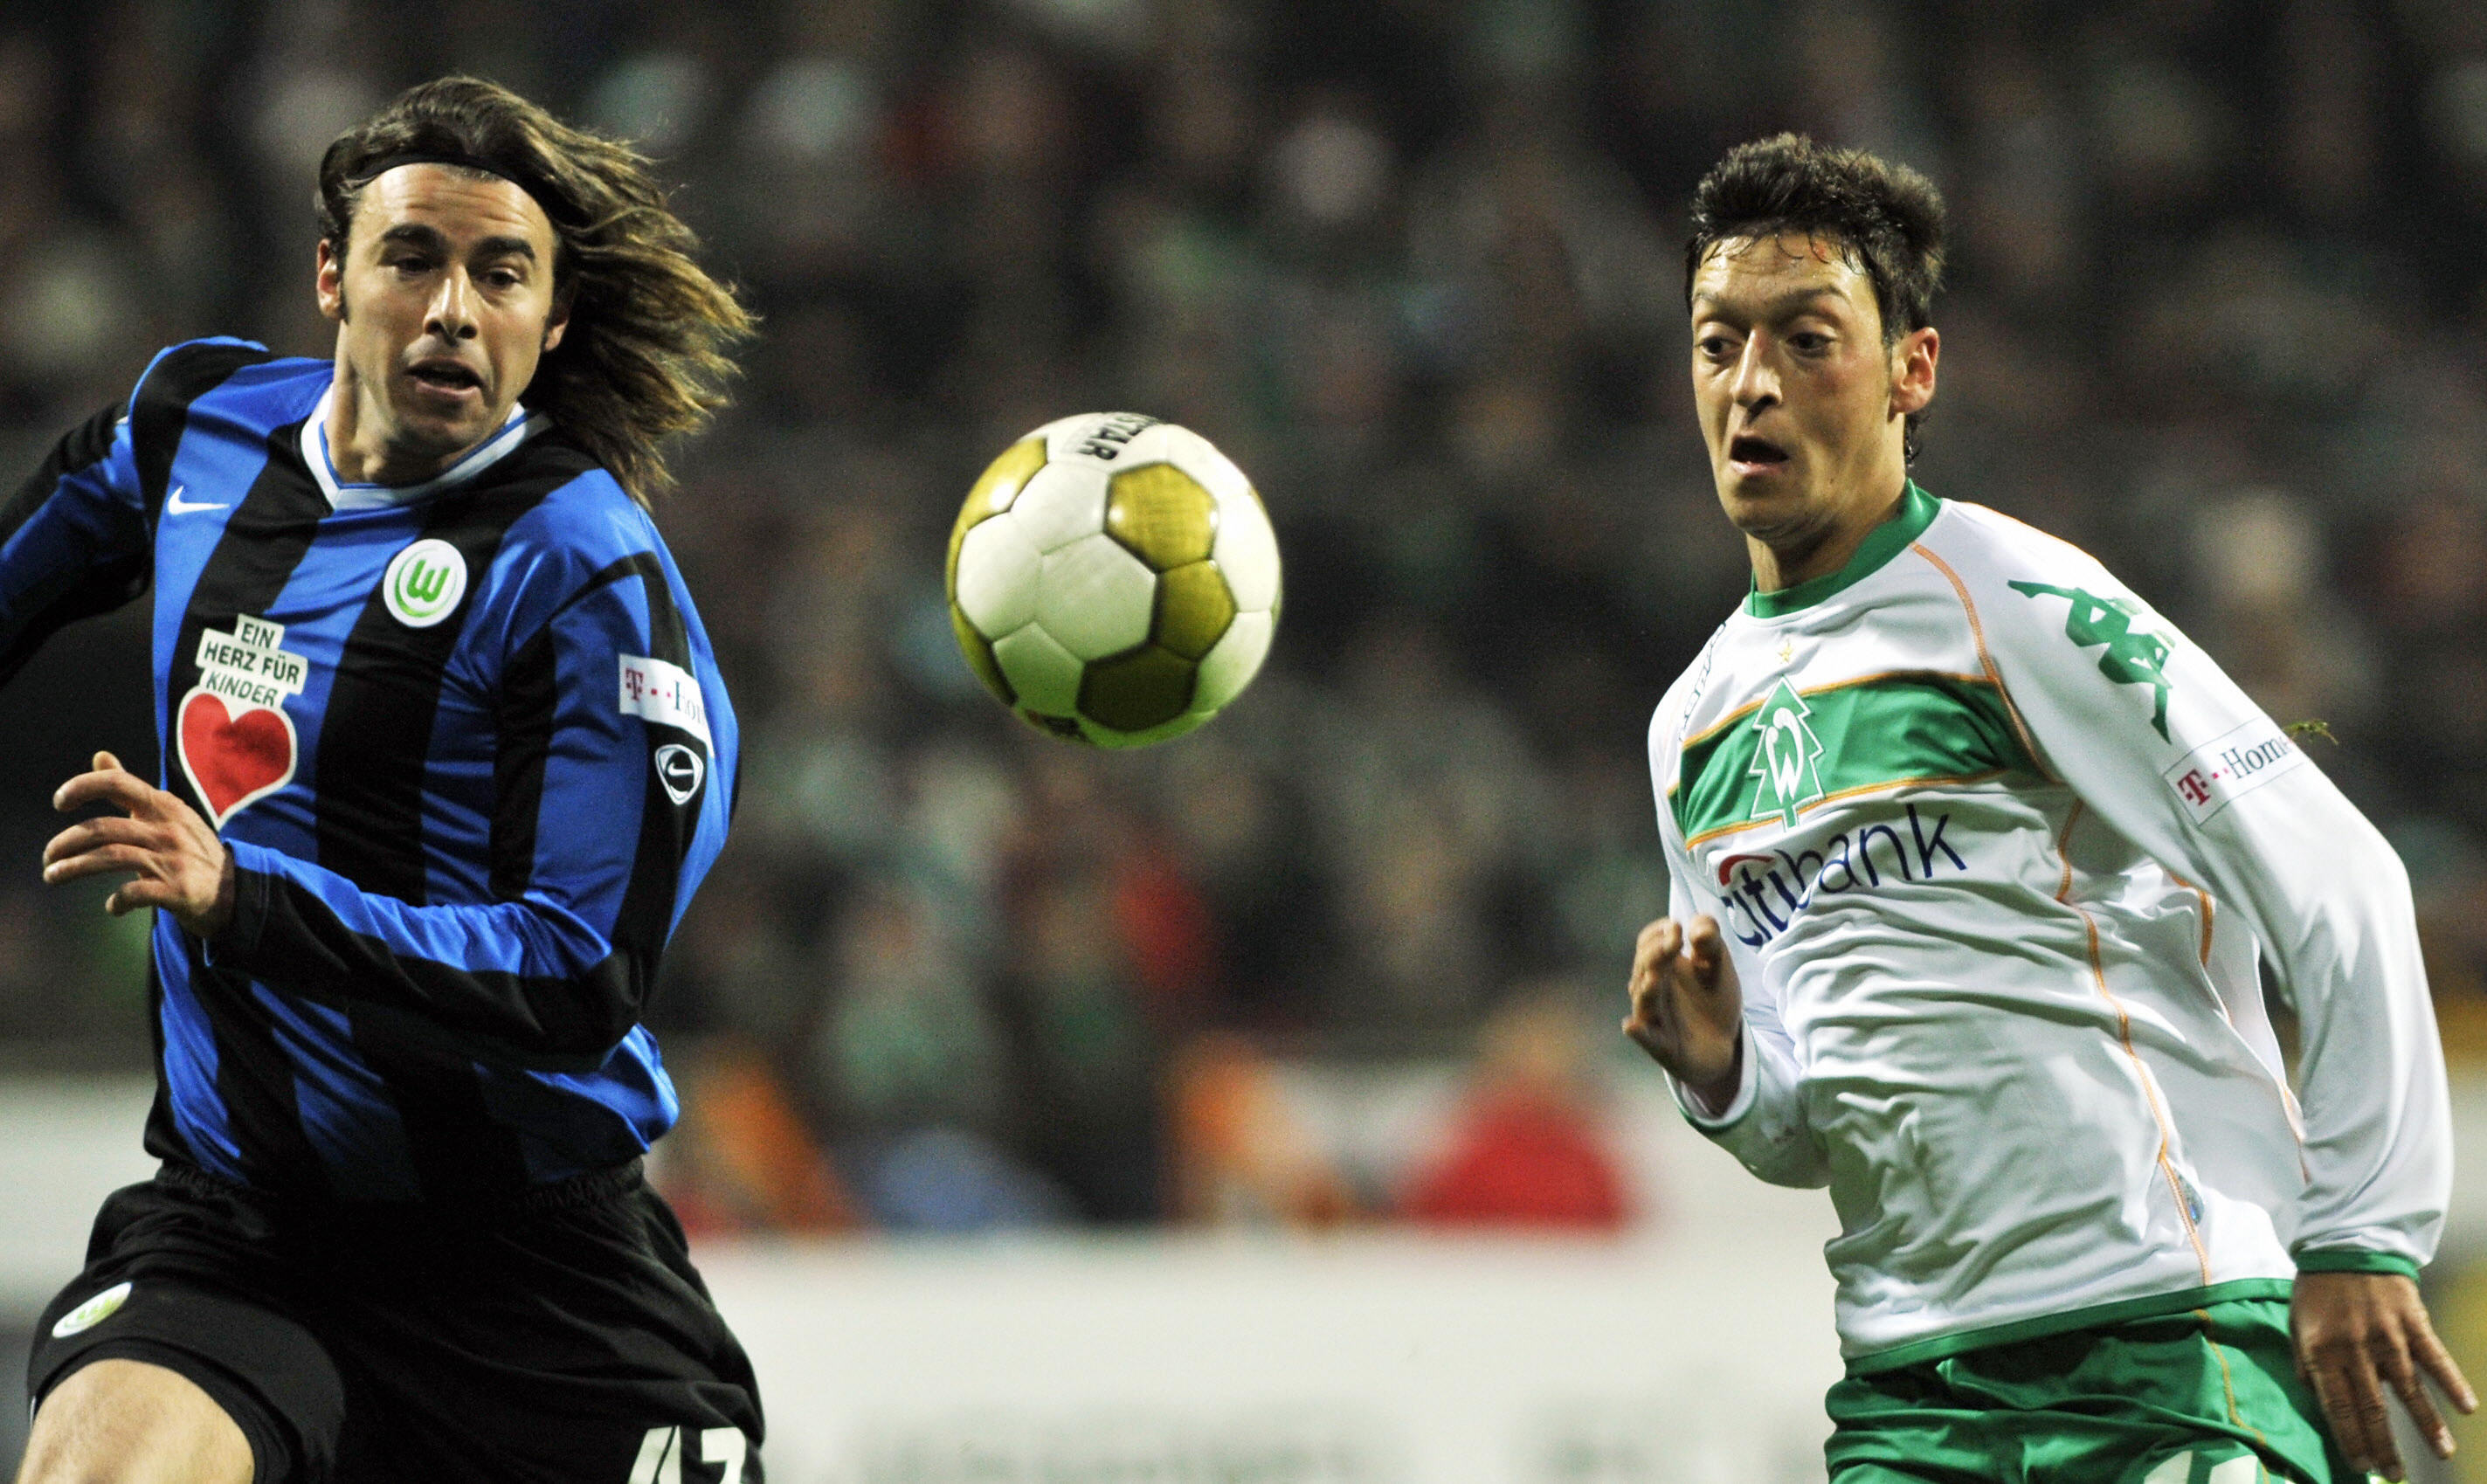 RESTRICTIONS / EMBARGO - ONLINE CLIENTS MAY USE UP TO SIX IMAGES DURING EACH MATCH WITHOUT THE AUTHORISATION OF THE DFL. NO MOBILE USE DURING THE MATCH AND FOR A FURTHER TWO HOURS AFTERWARDS IS PERMITTED WITHOUT THE AUTHORISATION OF THE DFL. Werder Bremen's midfielder Mesut Oezil (R) and Wolfsburg's Italian defender Andrea Barzagli vies for the ball during the German first division Bundesliga football match Werder Bremen vs VfL Wolfsburg in the northern German city of Bremen on December 13, 2008. AFP PHOTO DDP / DAVID HECKER GERMANY OUT (Photo credit should read DAVID HECKER/AFP/Getty Images)